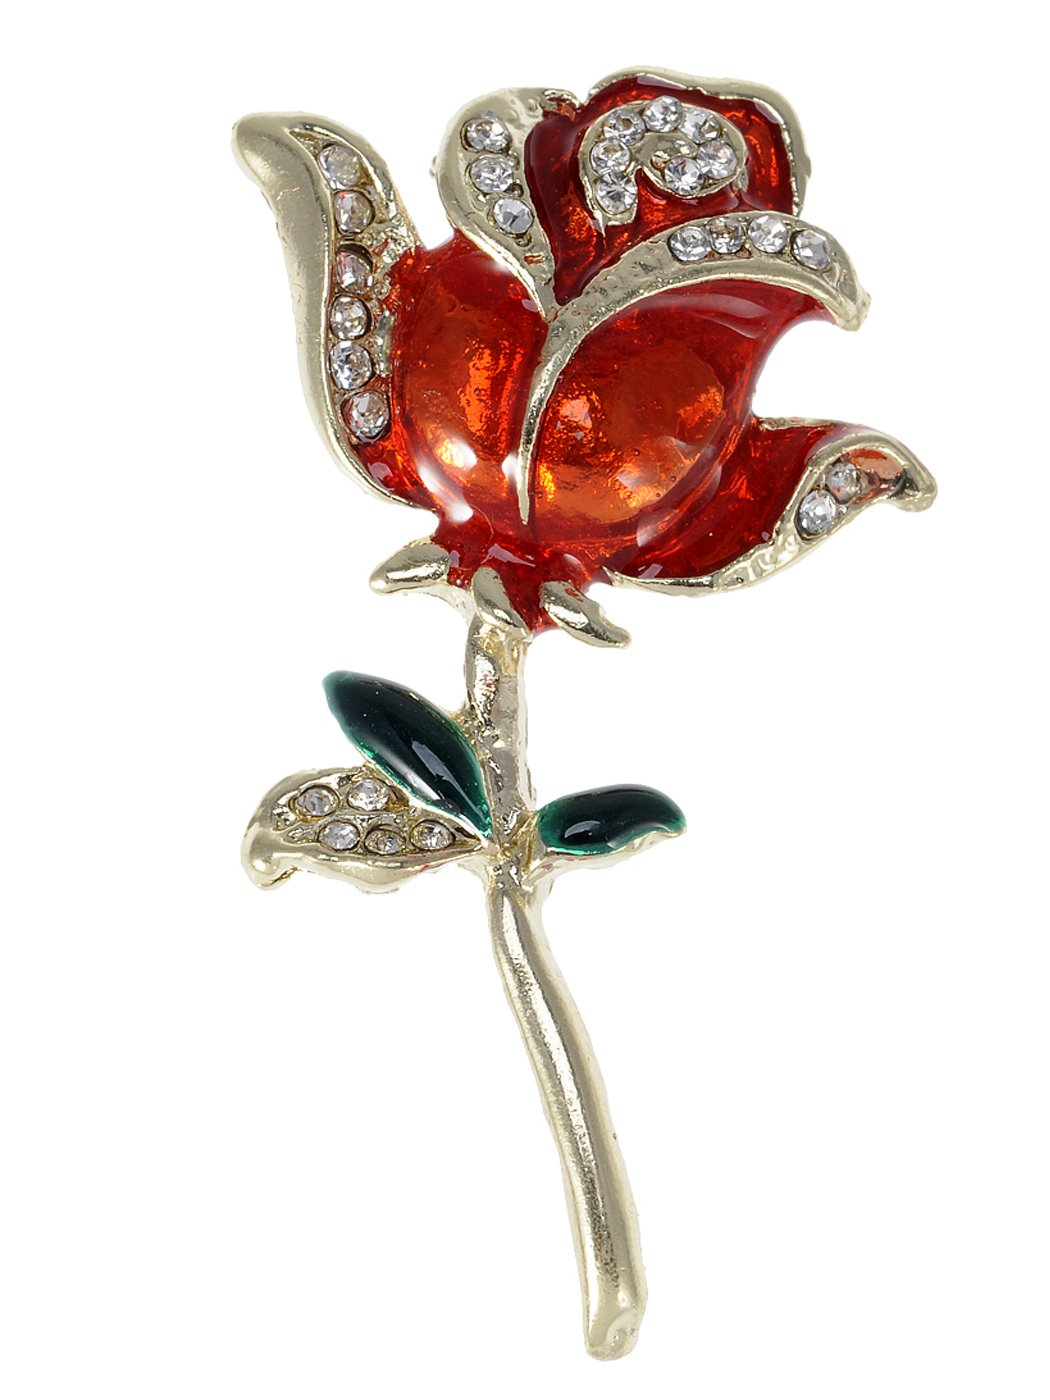 Alilang Golden Tone Crystal Rhinestone Hand Painted Single Stem Red Love Rose Brooch Pin by Alilang (Image #1)